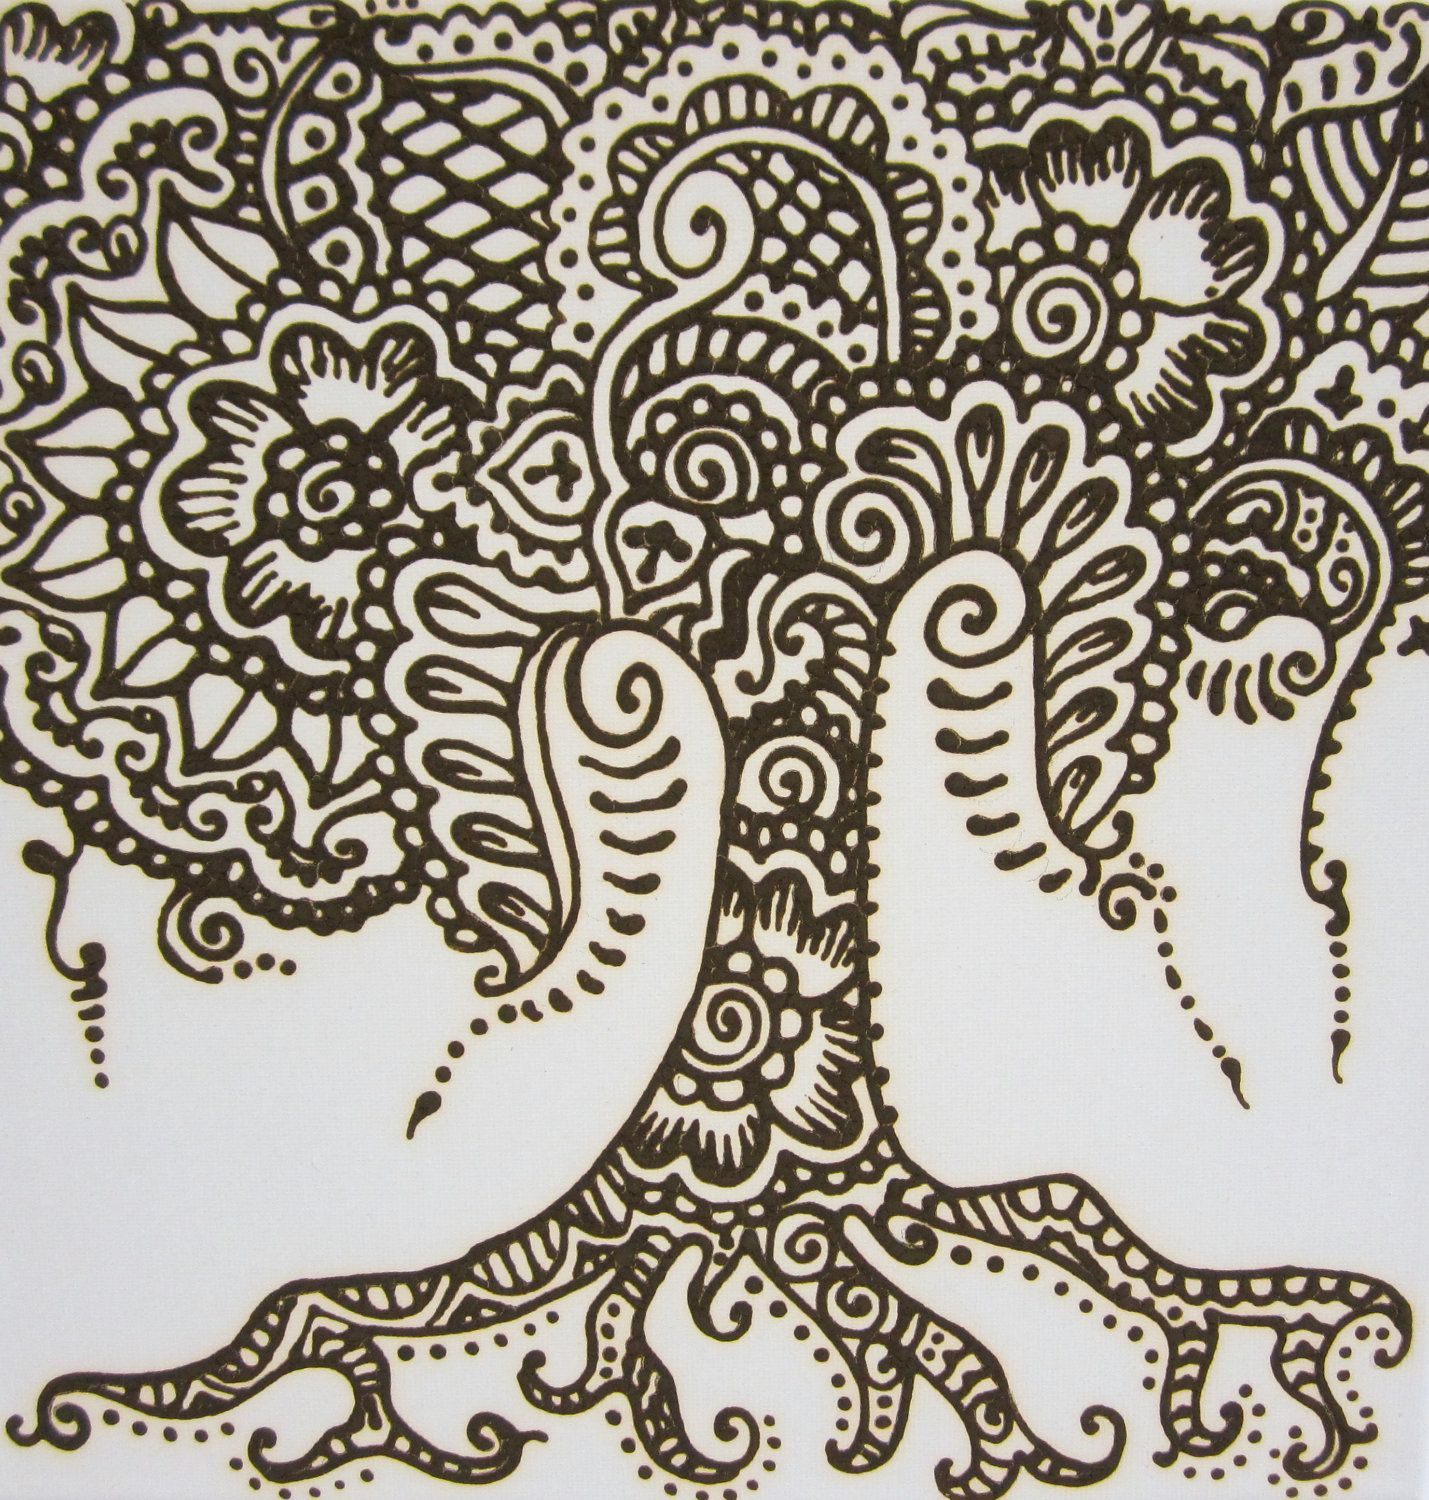 Henna Tree In Henna Paste On 12 X 12 Canvas Ready To Hang 30 00